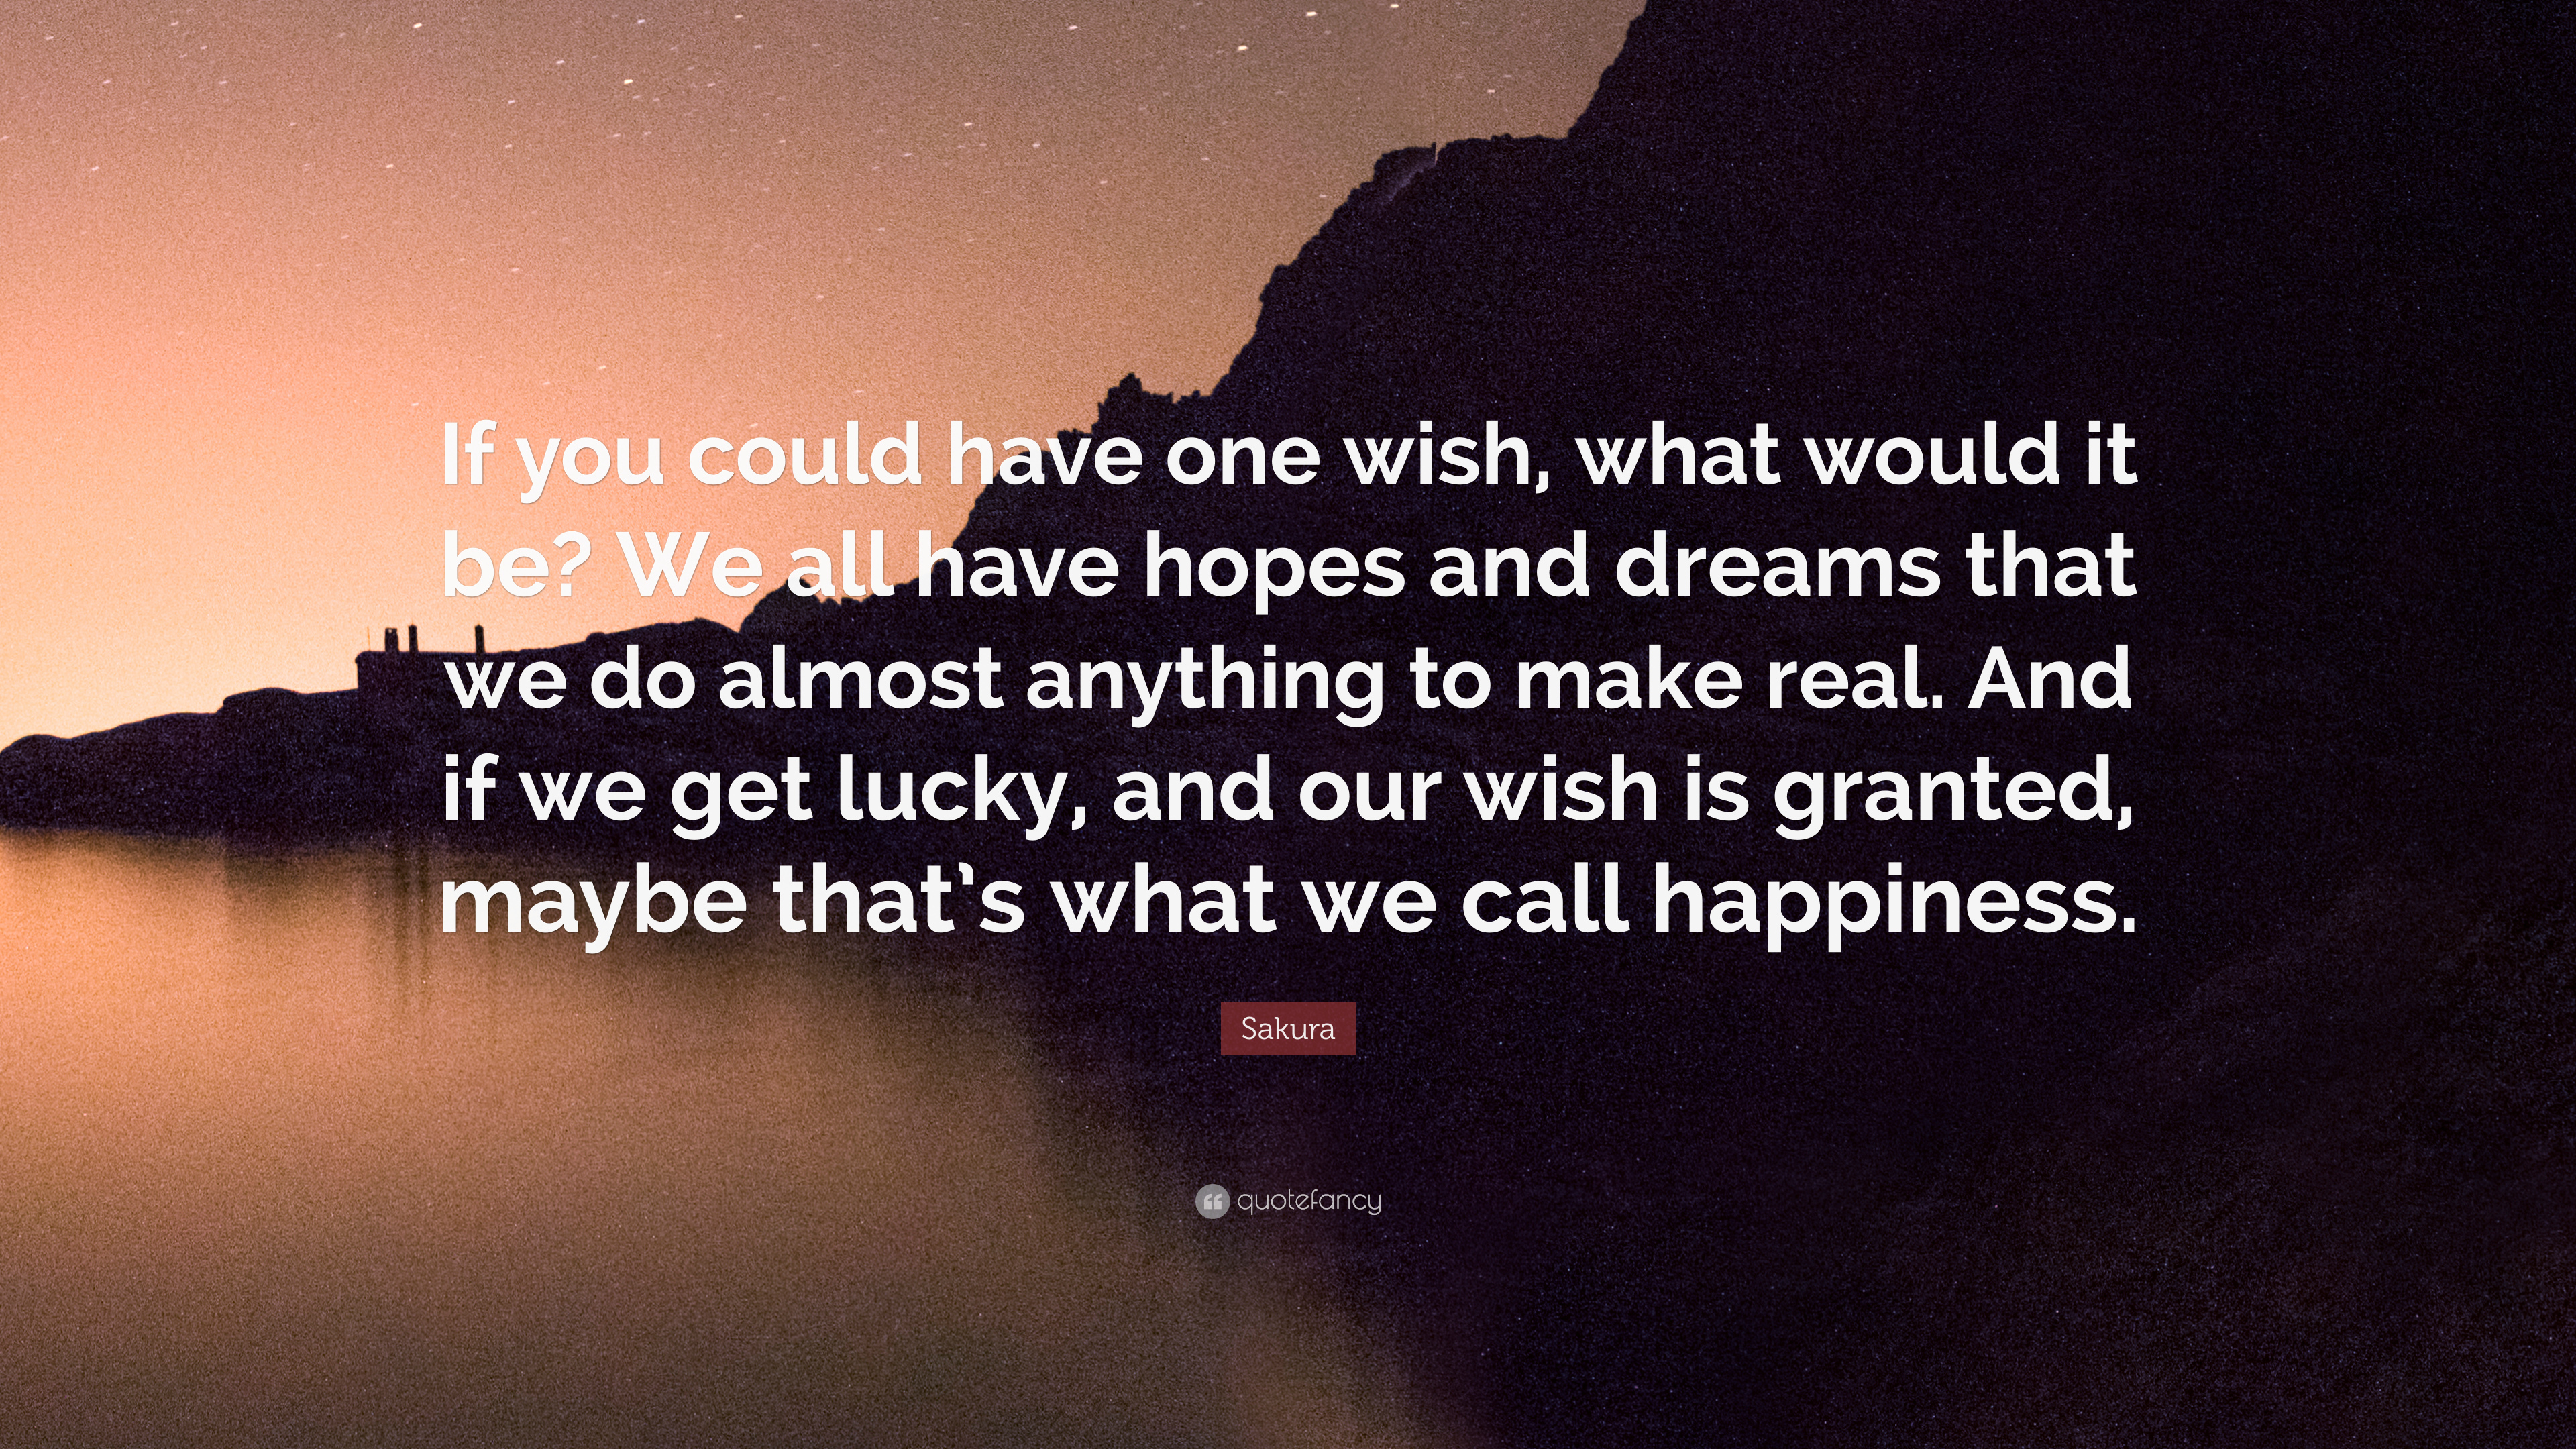 one wish what would it be